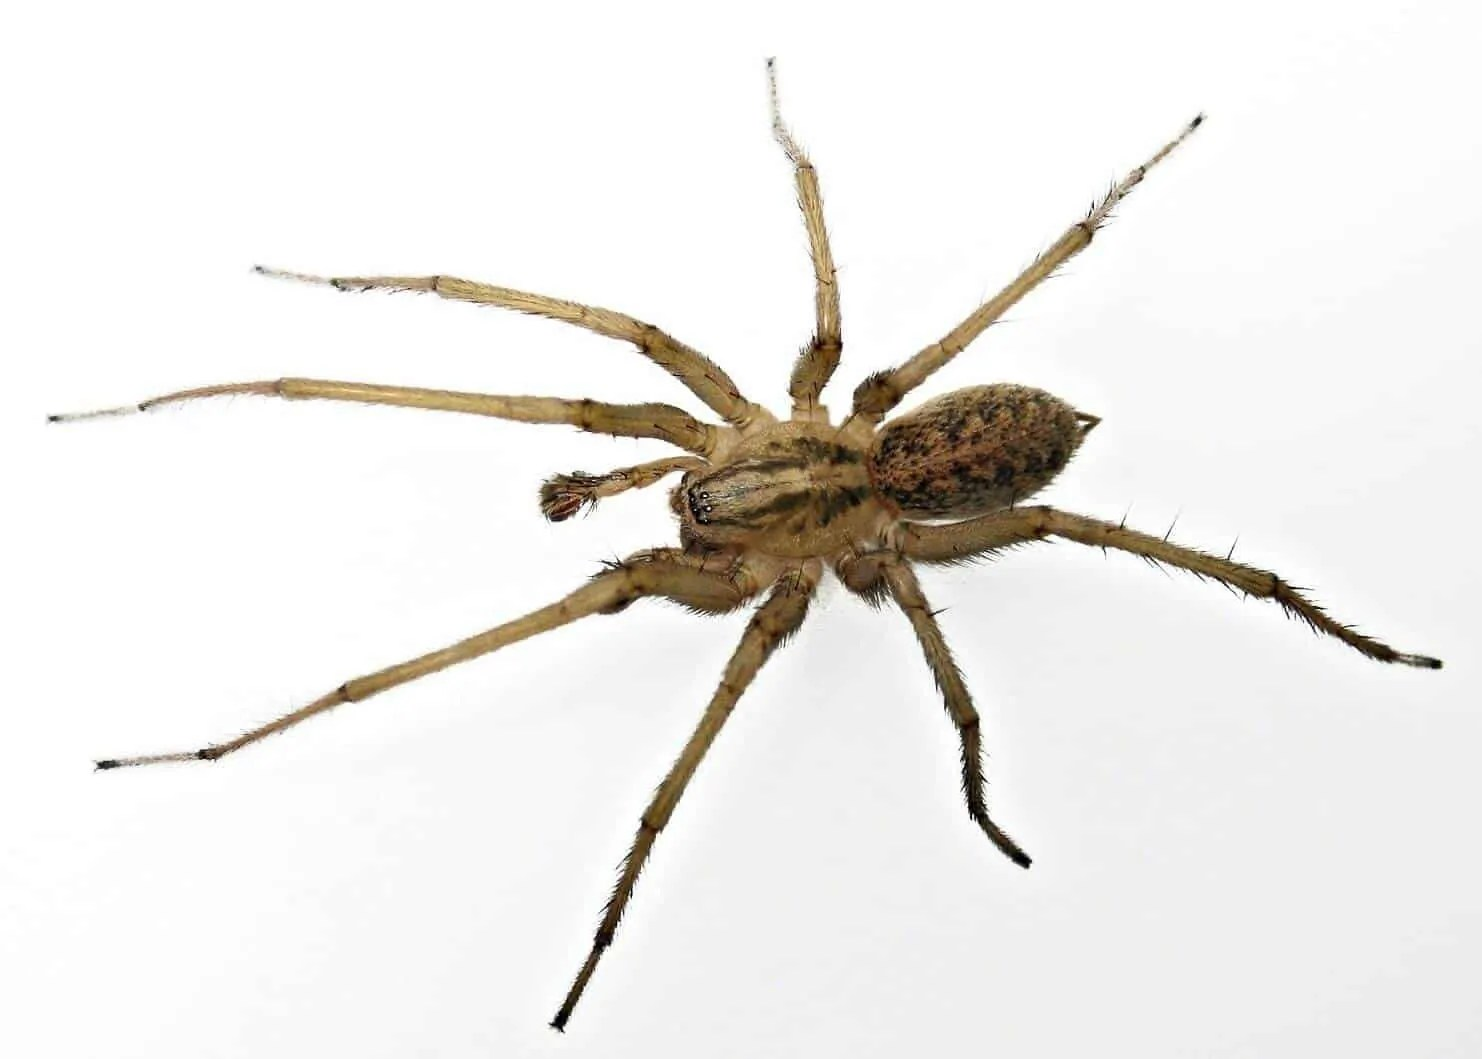 Spiders Of Cape Cod Part - 27: Also Called Tagenaria Agrestis, The Hobo Spider Is Found In The  Northwestern United States, Washington, Oregon And Idaho. This Spider Makes  Thick Webs With ...